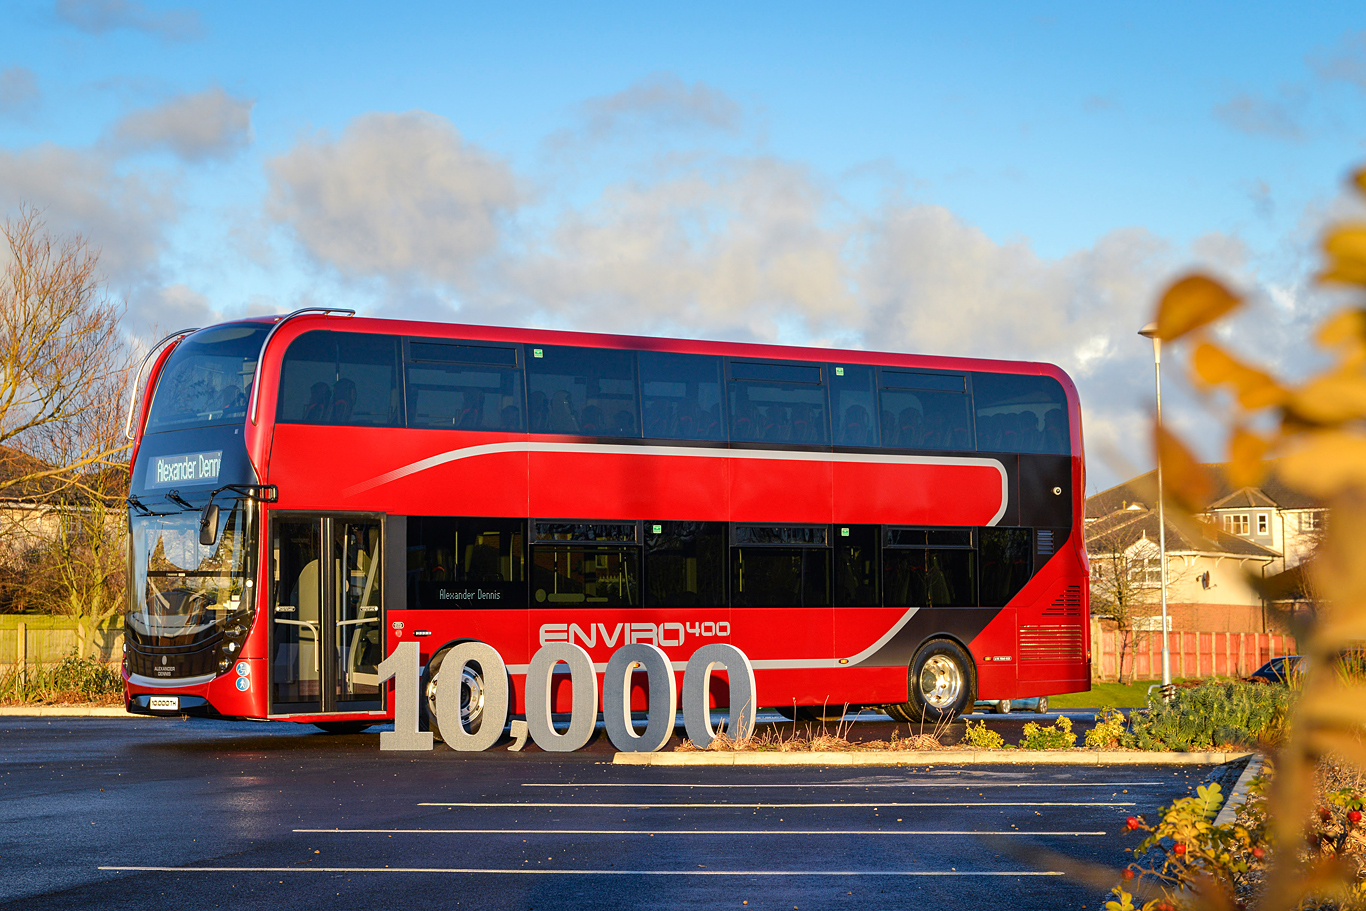 ADL celebrates 10,000-bus milestone with executive Enviro400